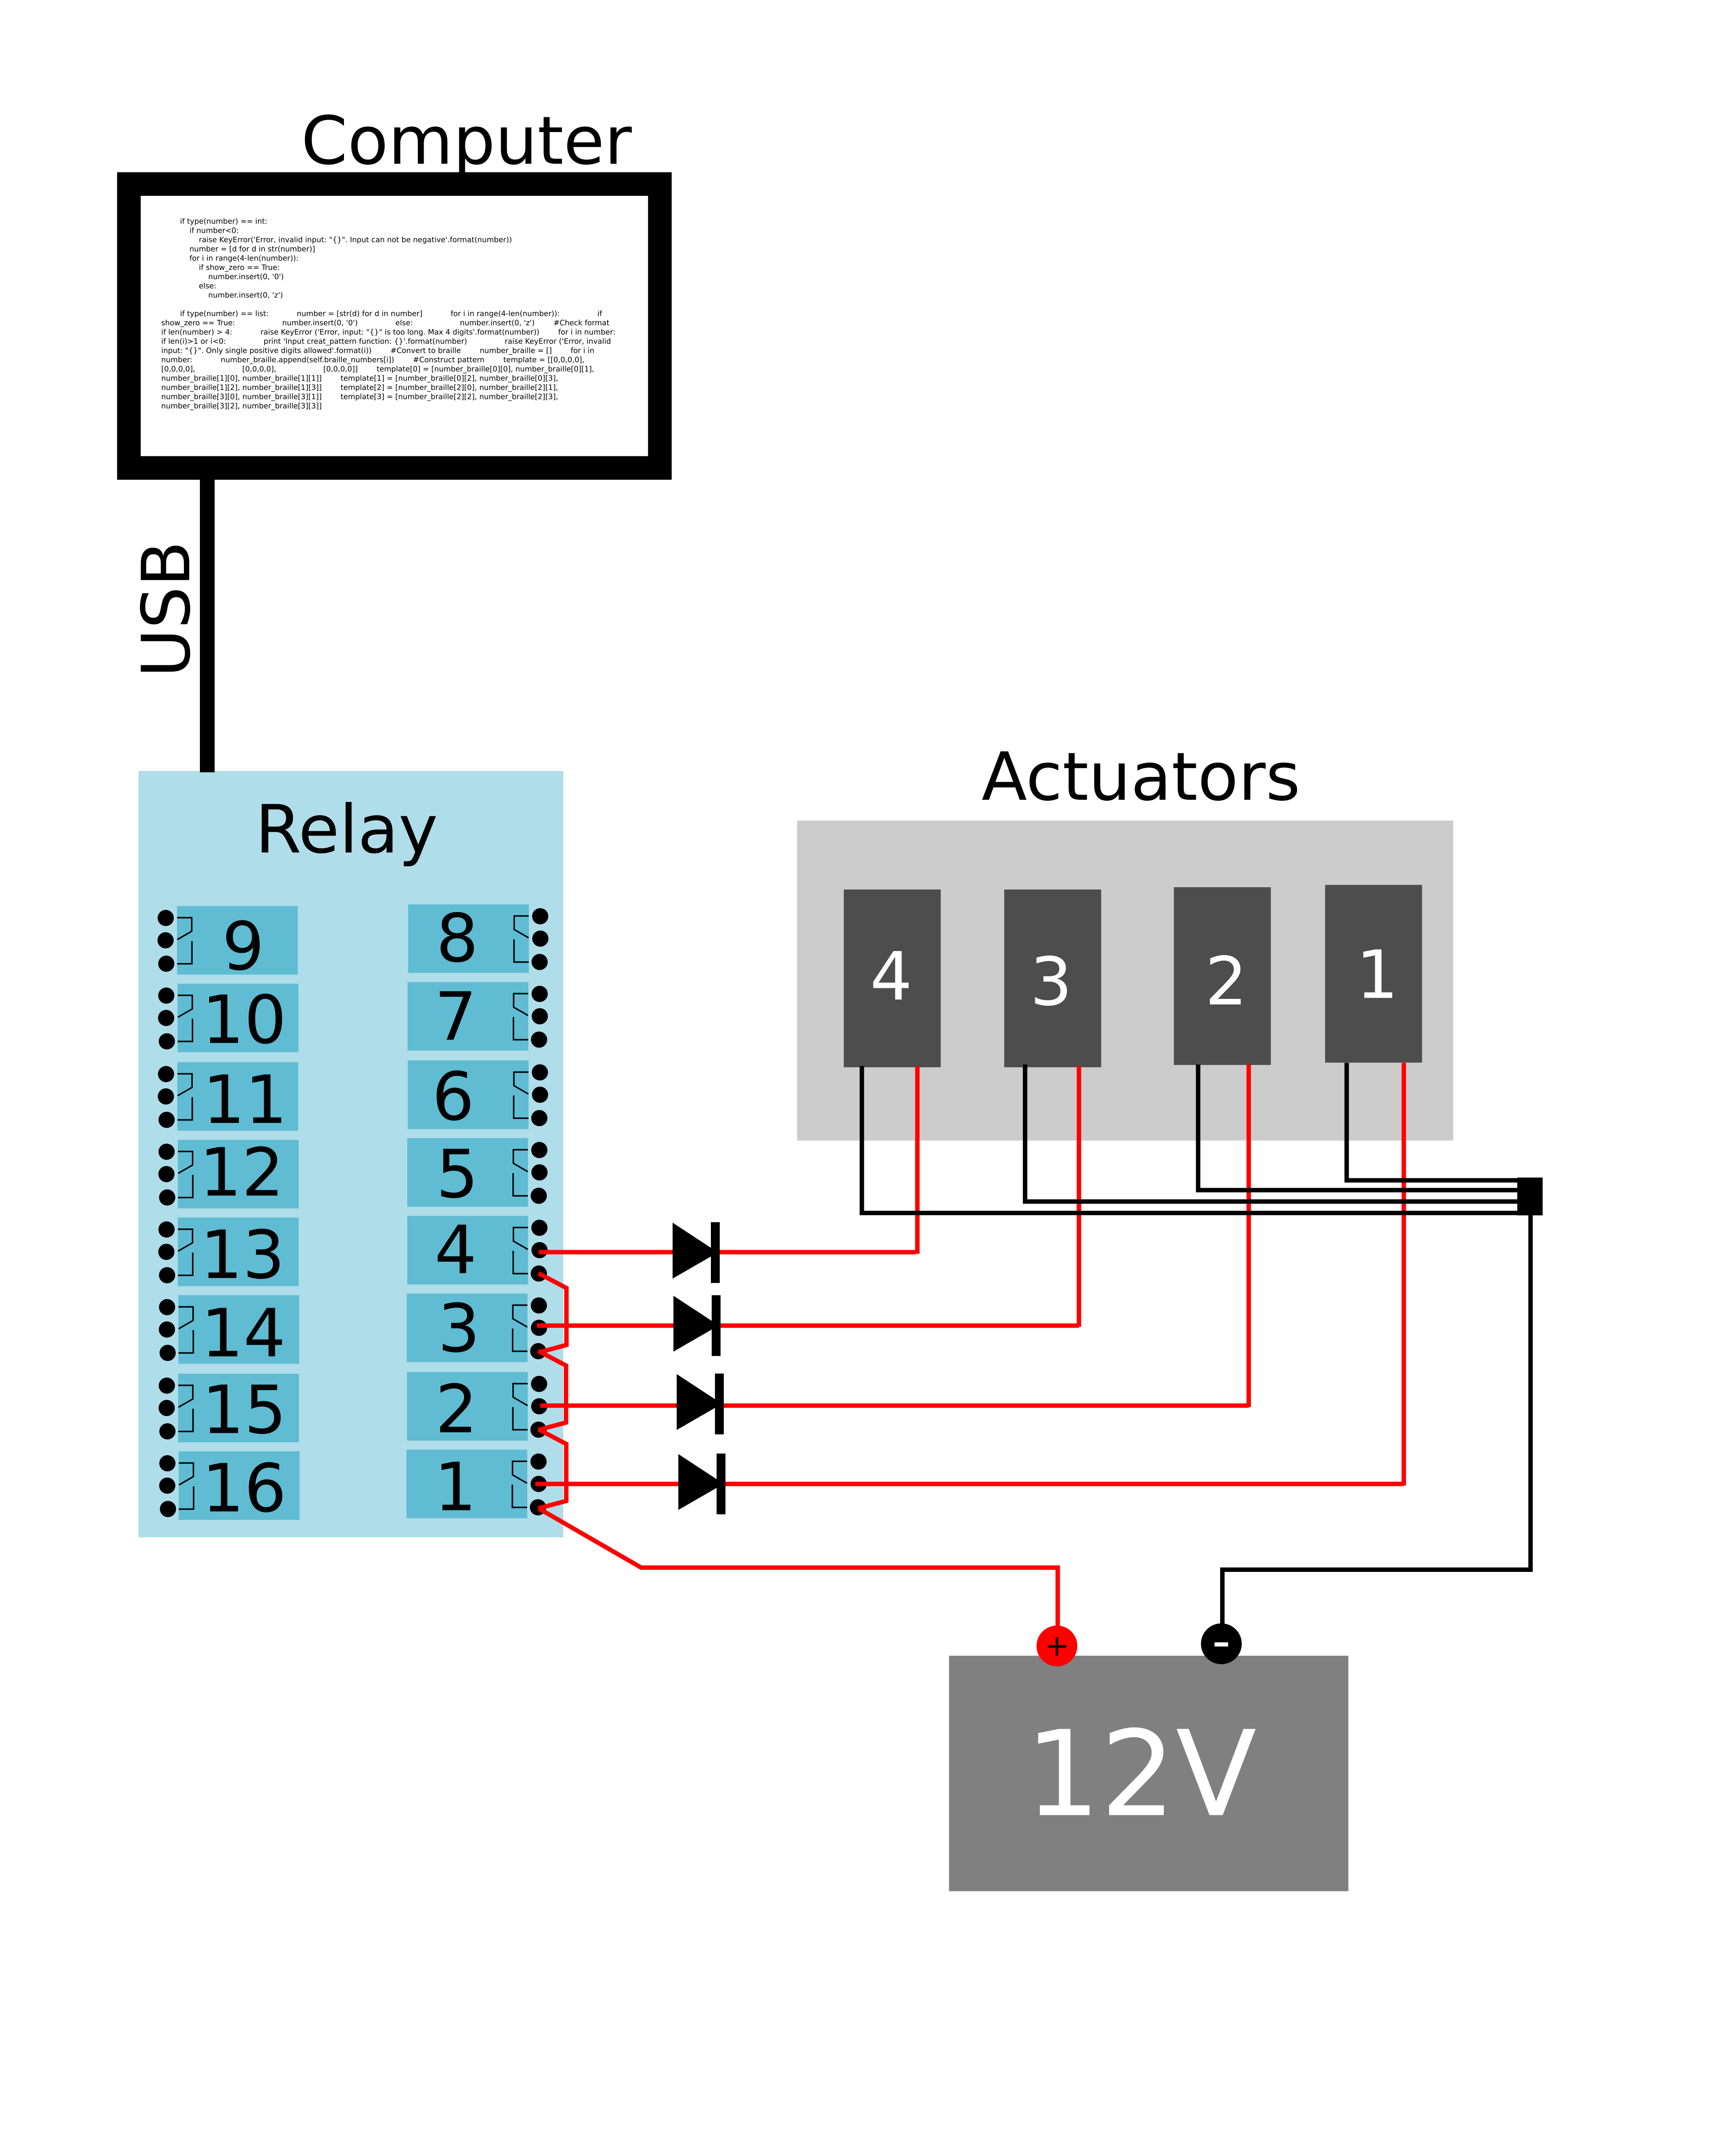 Haptic Input Actuator Relay Wiring Diagram For Simplicity Only The First 4 Actuators Are Wired But All Other Follow Same Scheme Take Note Of Jumper Wires Between Relays